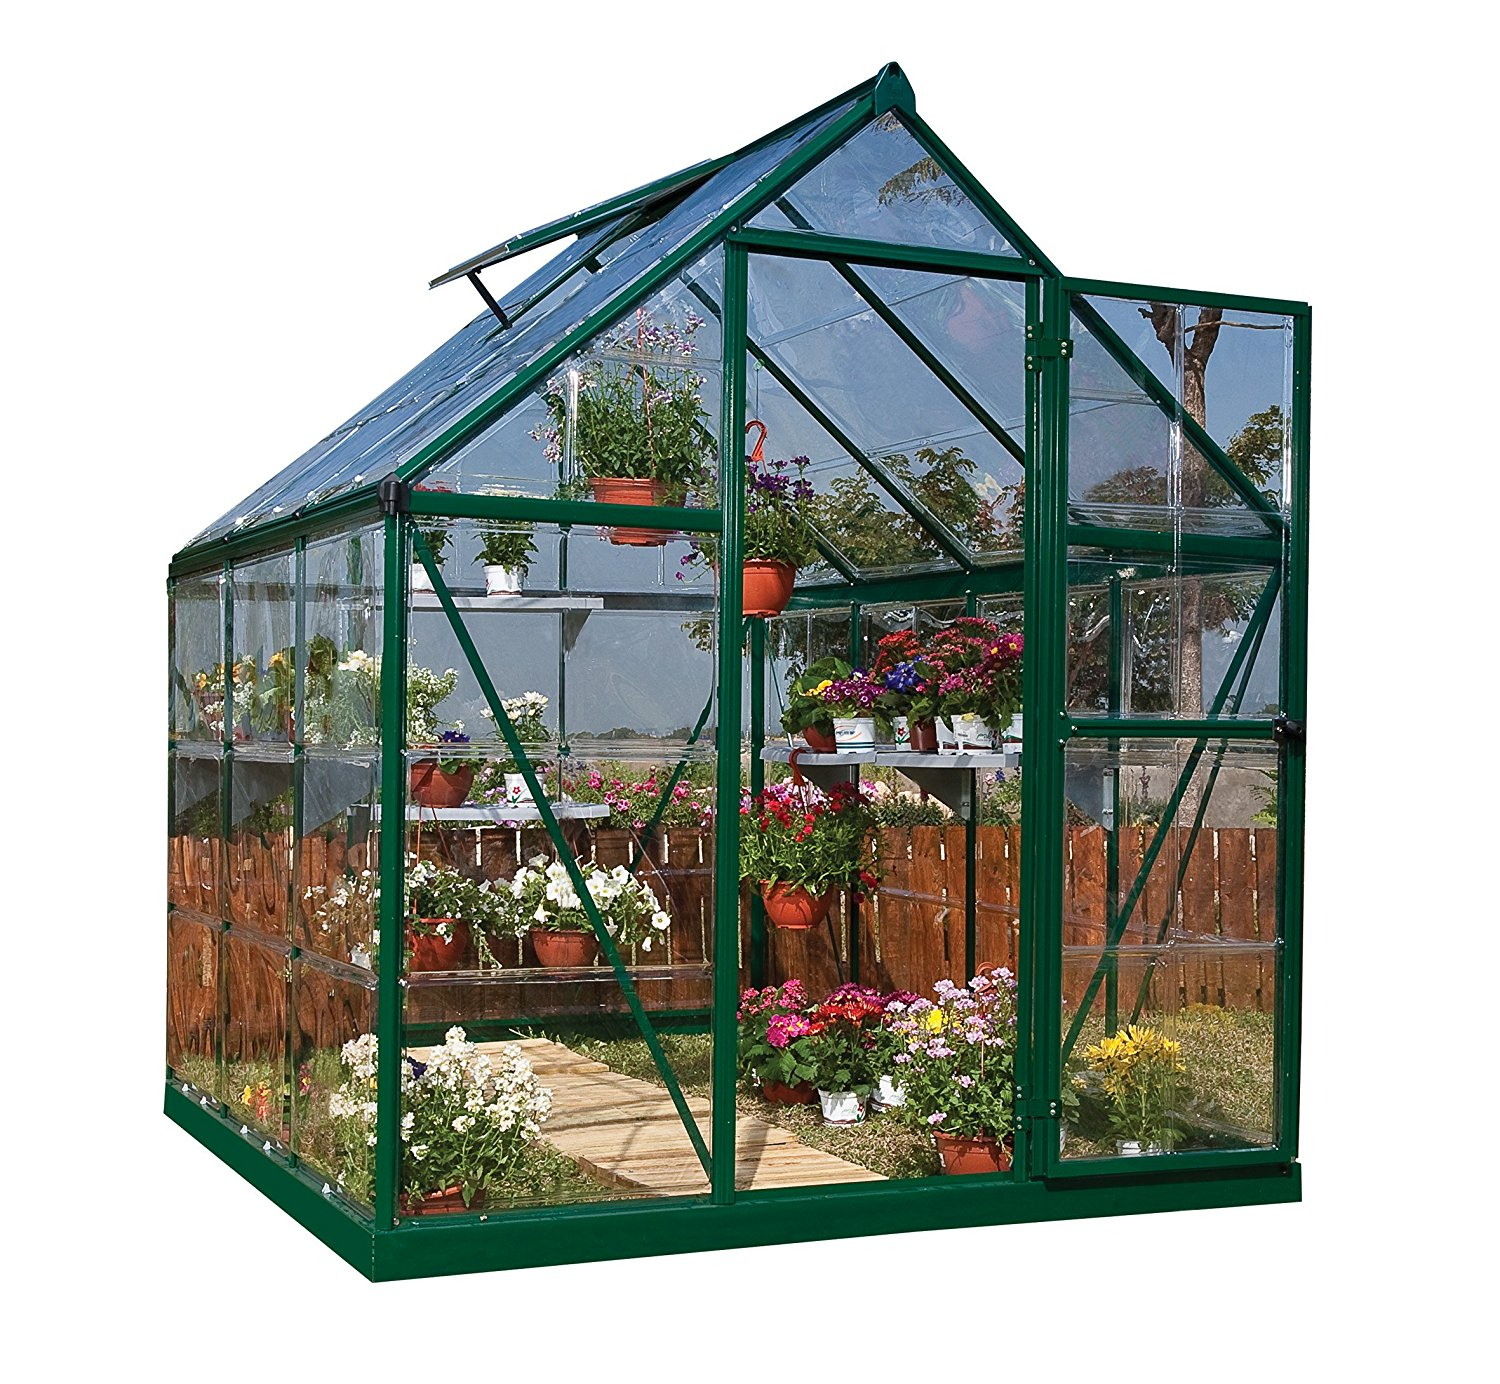 Abba Patio 8x10 Feet Large Walk In Fully Enclosed Garden Greenhouse With  Windows In White